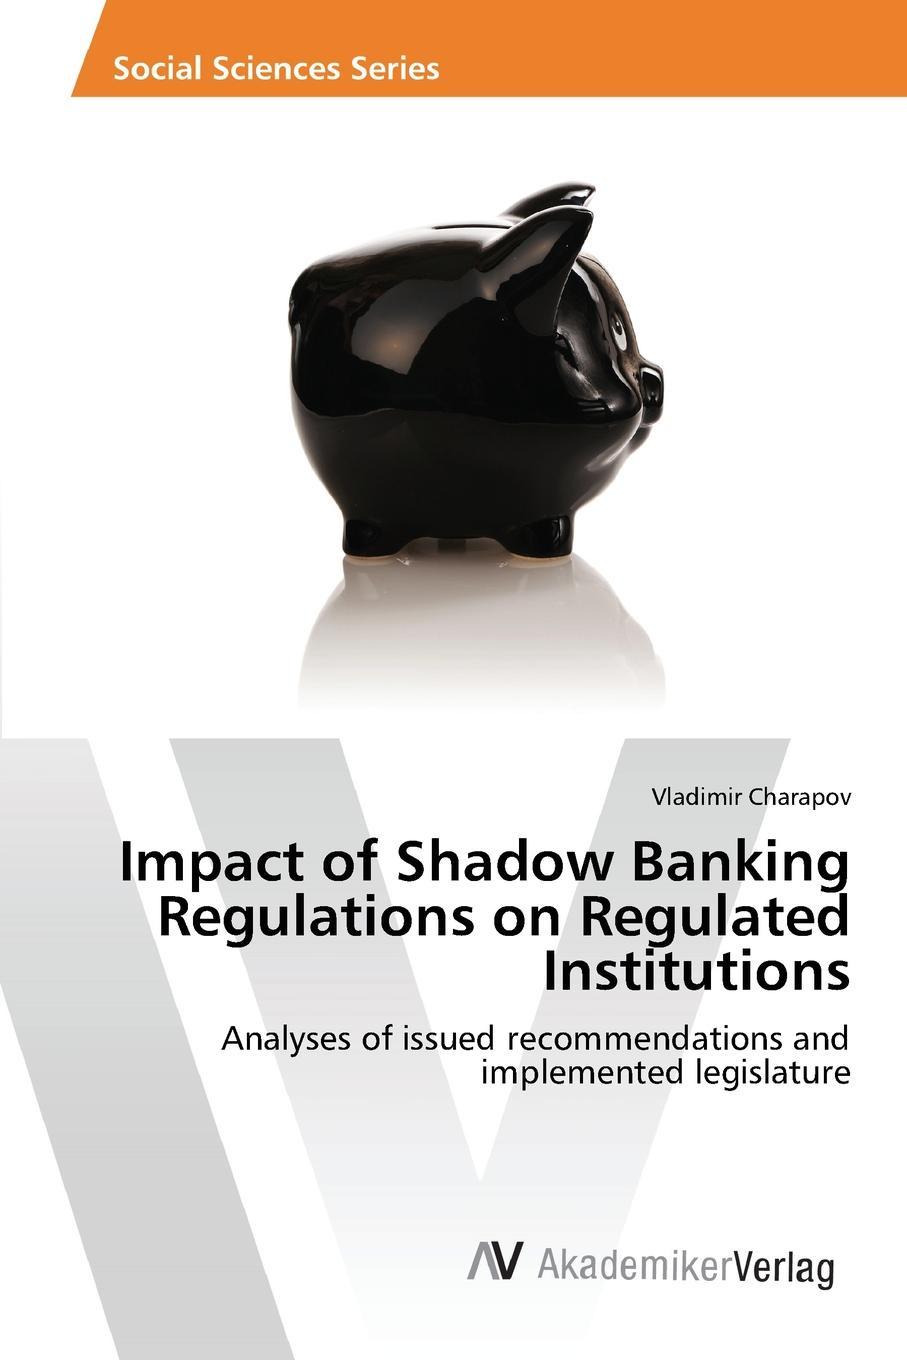 Charapov Vladimir Impact of Shadow Banking Regulations on Regulated Institutions andrew sheng shadow banking in china an opportunity for financial reform